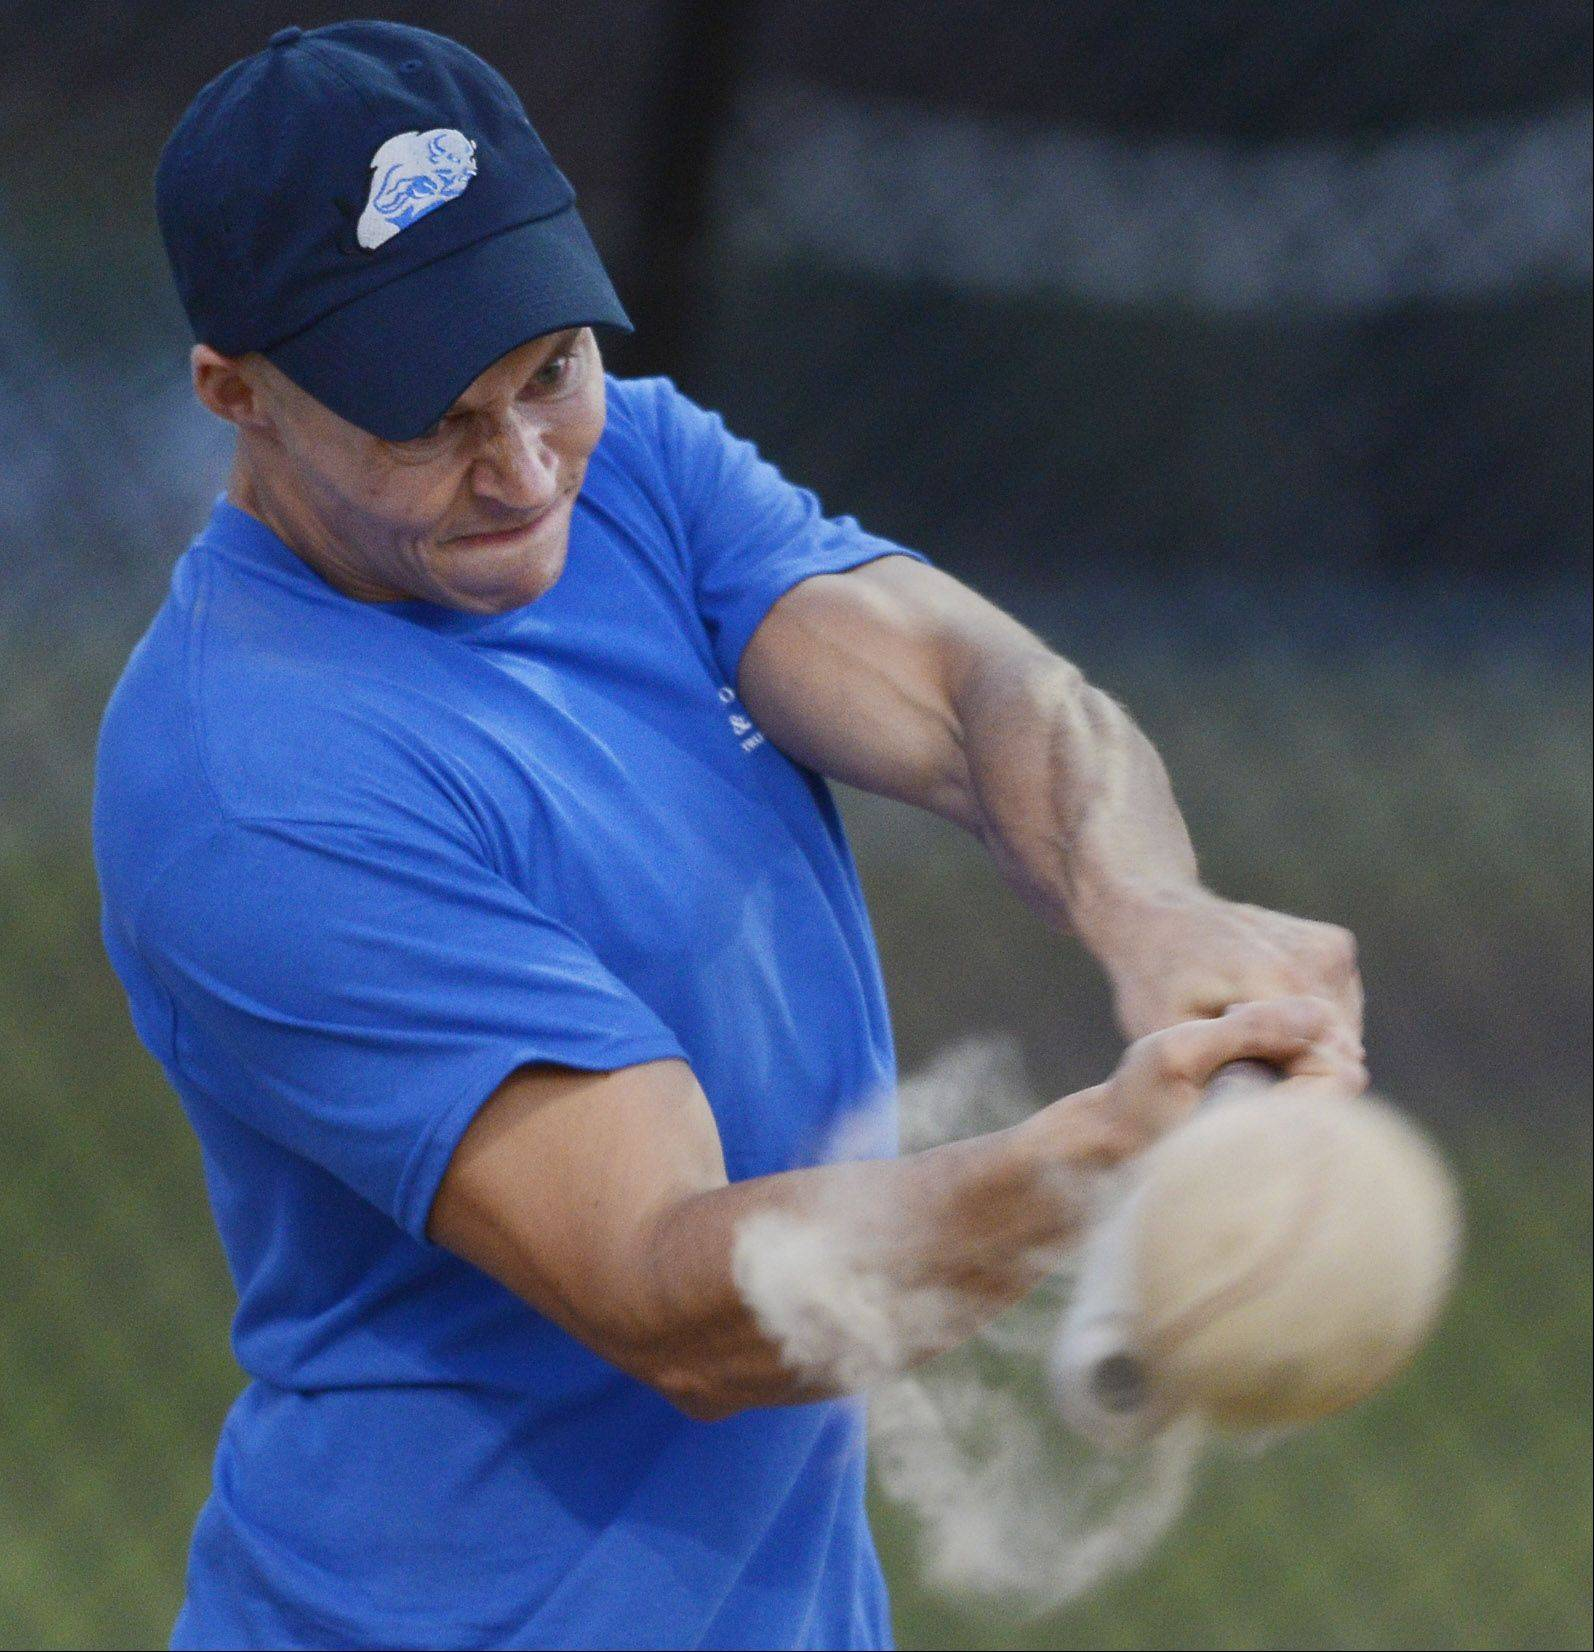 Cody Barker of B&B Services, Buffalo Grove, hits a bases-loaded double during Wednesday's annual charity softball game at Emmerich Park in Buffalo Grove.